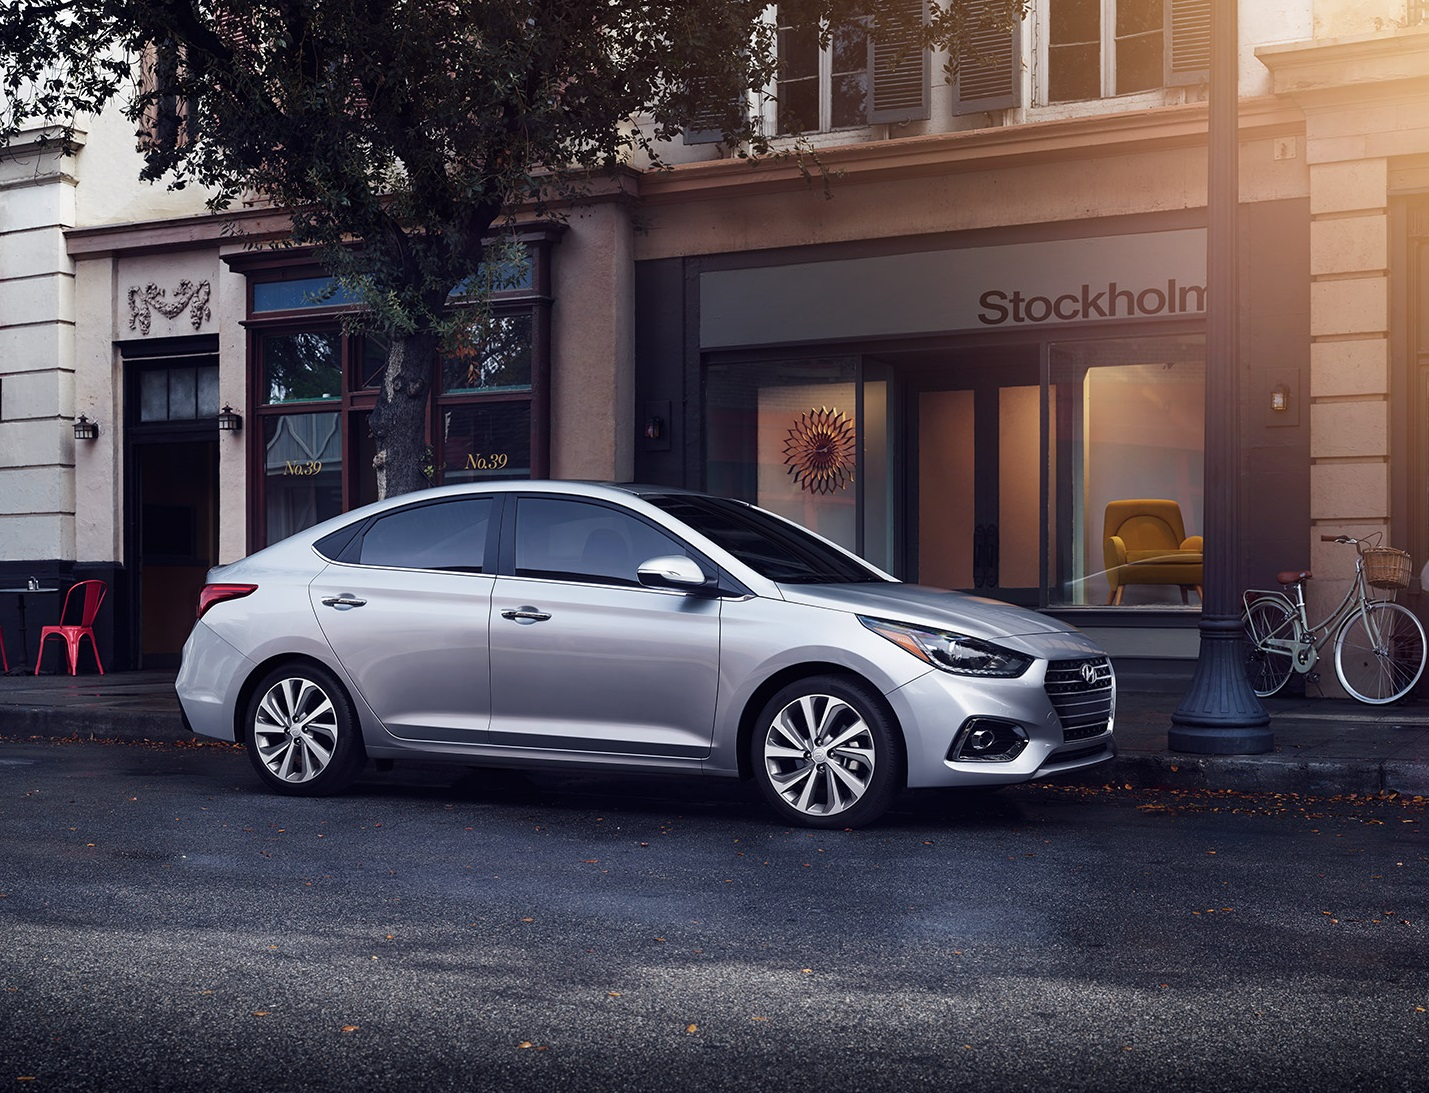 Oak Lawn IL - 2018 Hyundai Accent Overview